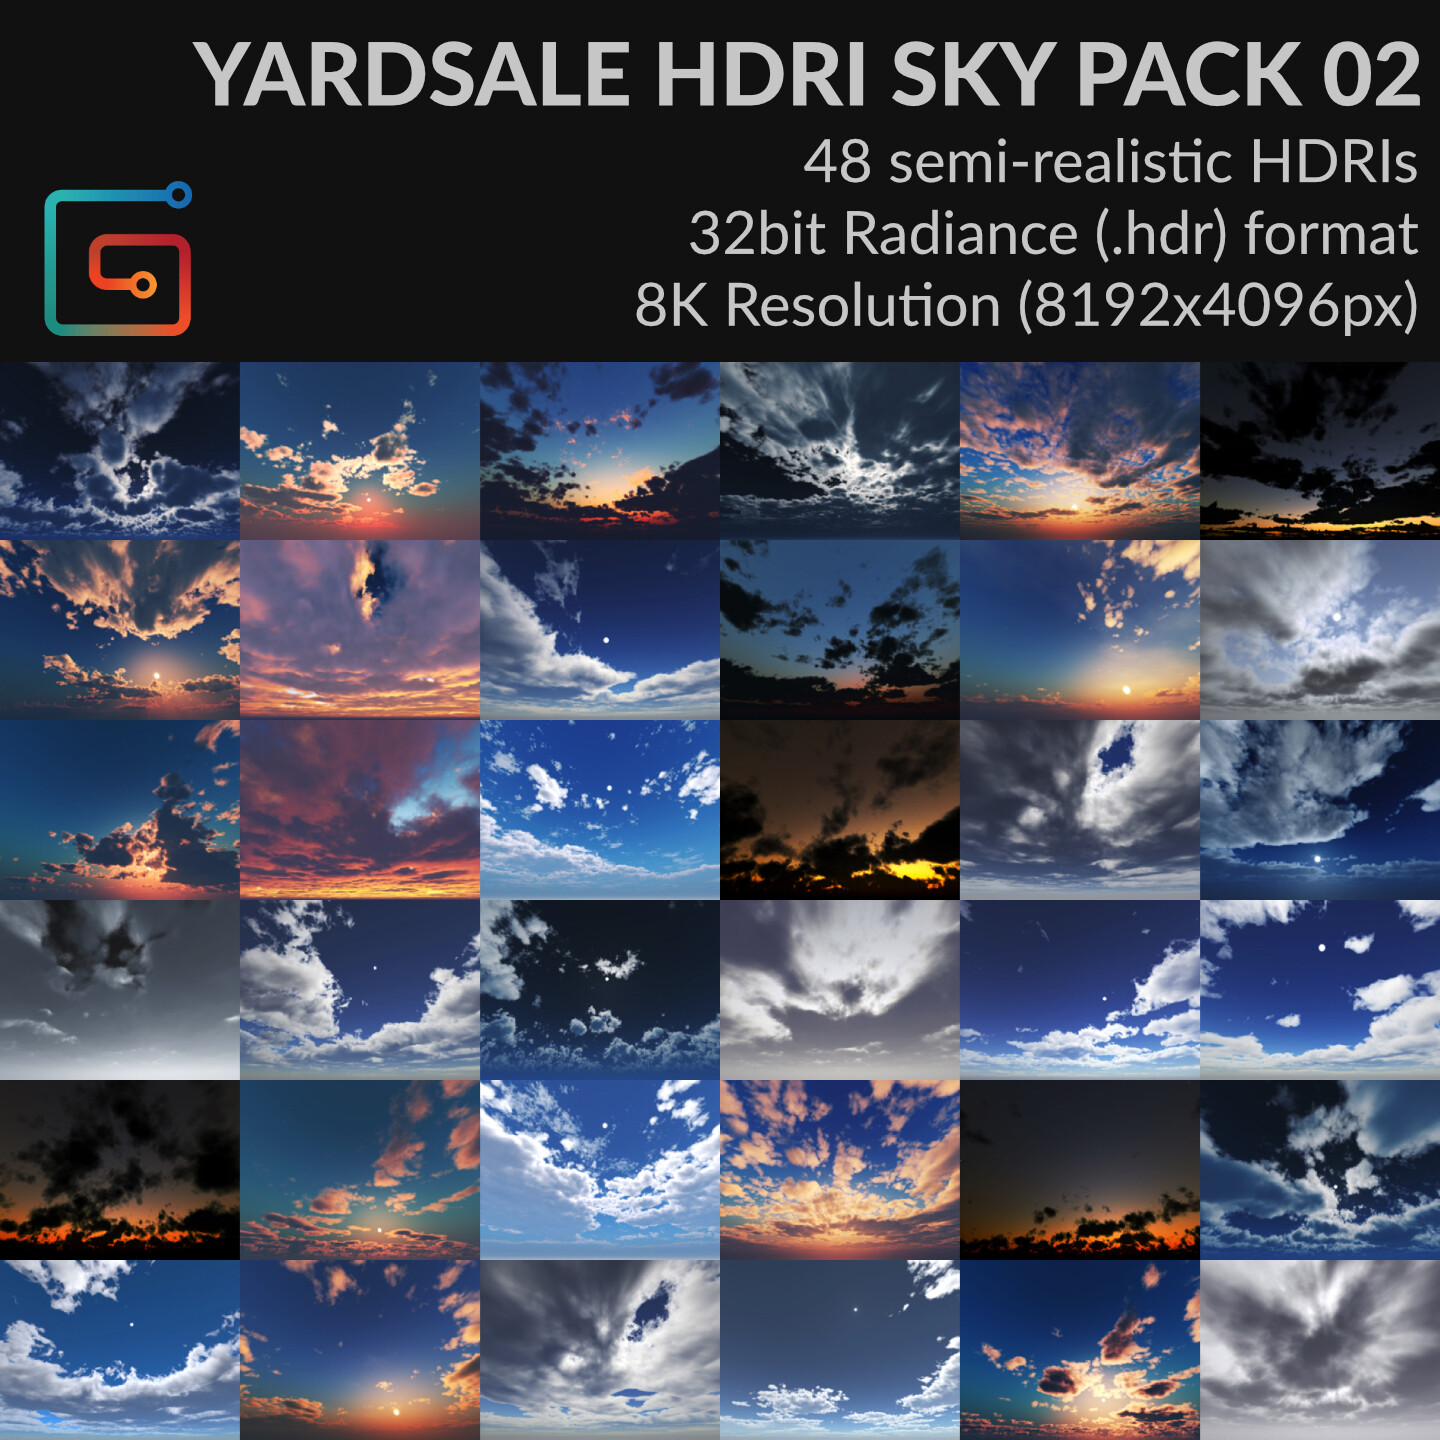 Now featuring 48 skies with crisp lights and shadows. Now includes cloudy overcast skies.